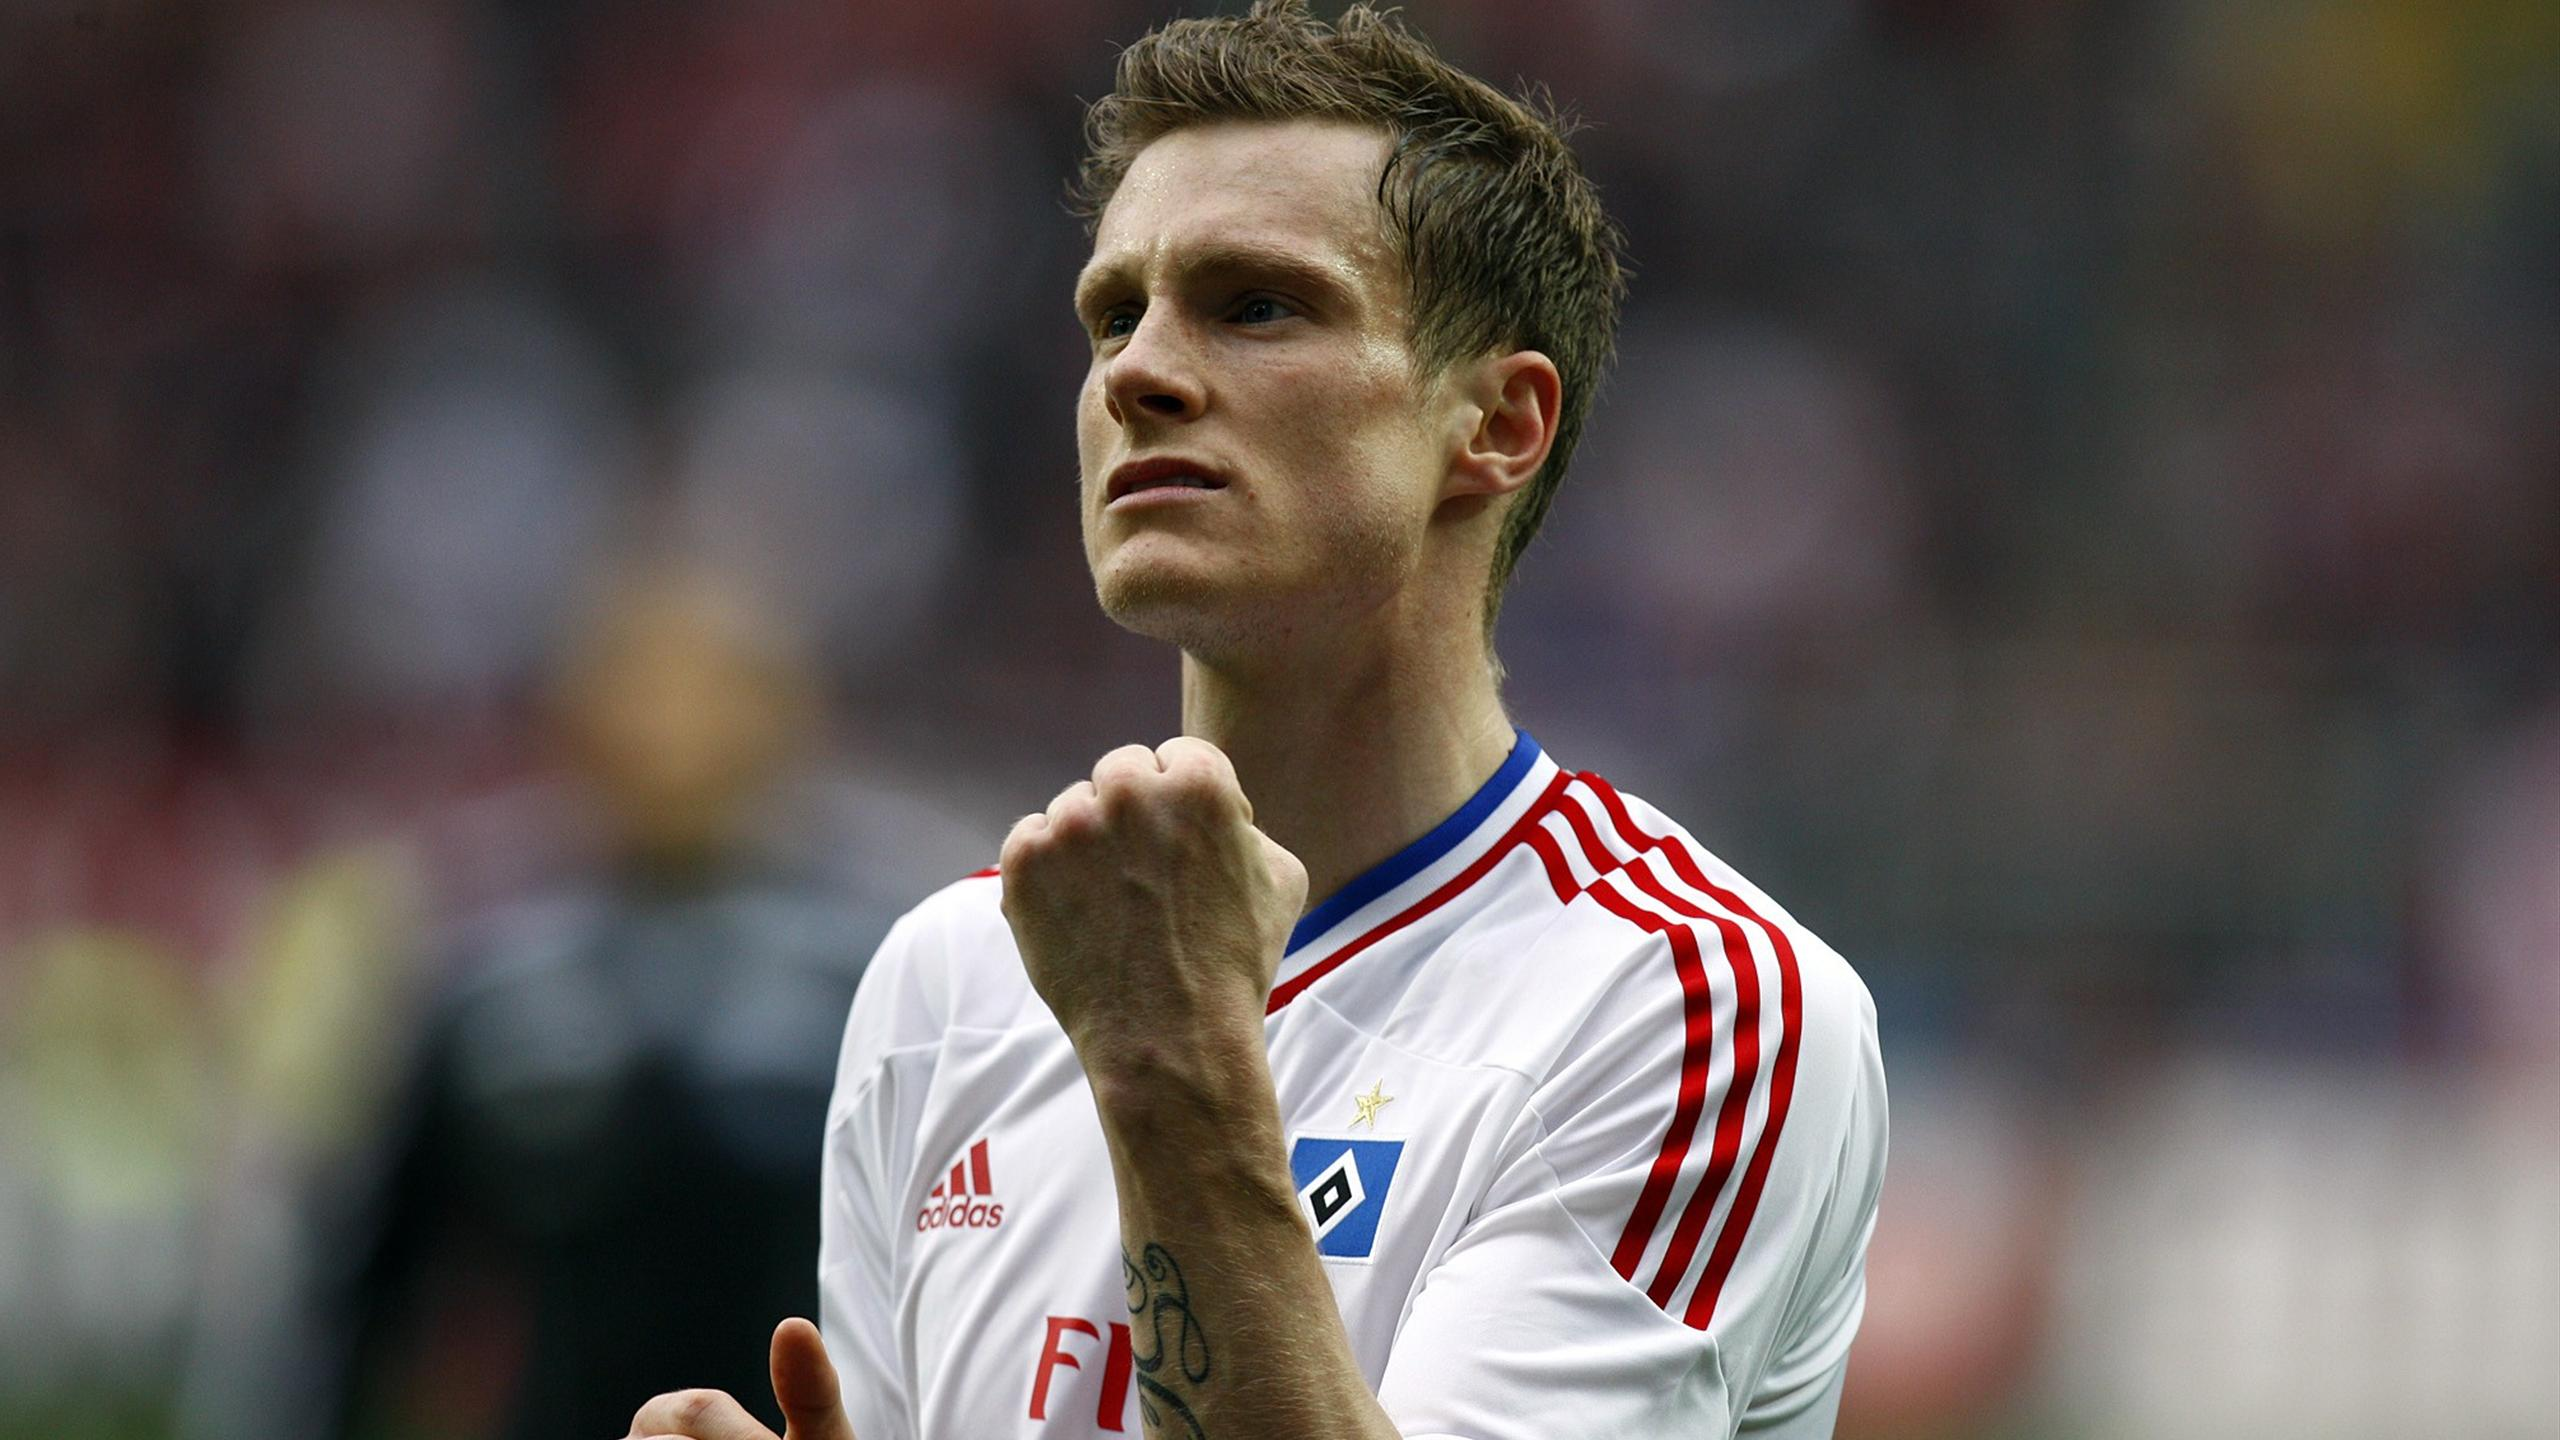 Marcell Jansen has ended his career